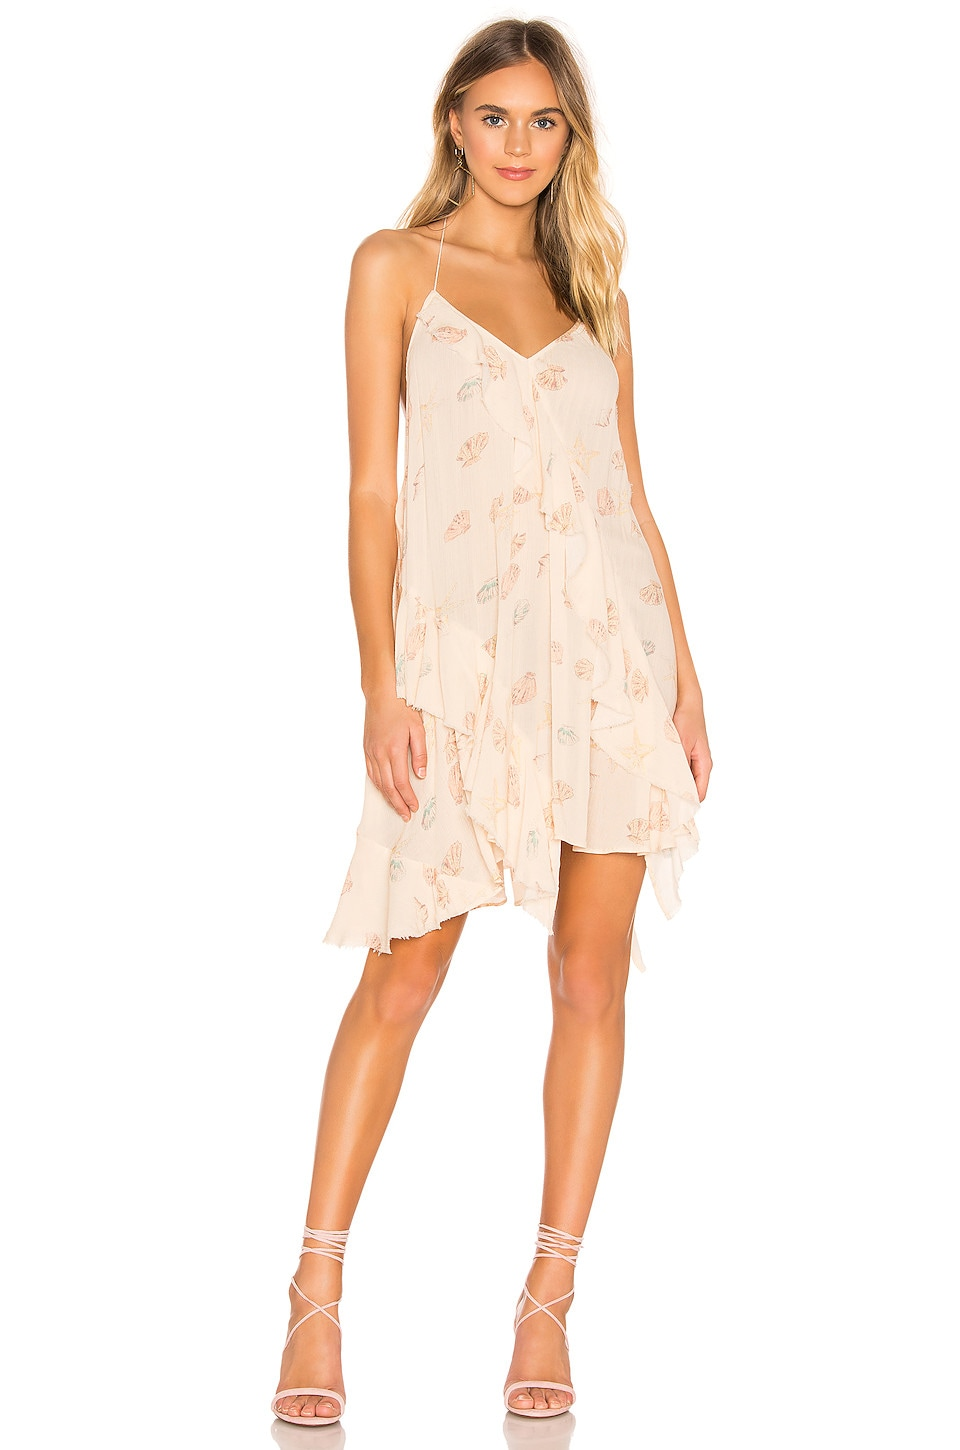 Free People Dresses FREE PEOPLE SUNLIT MINI DRESS IN PINK.